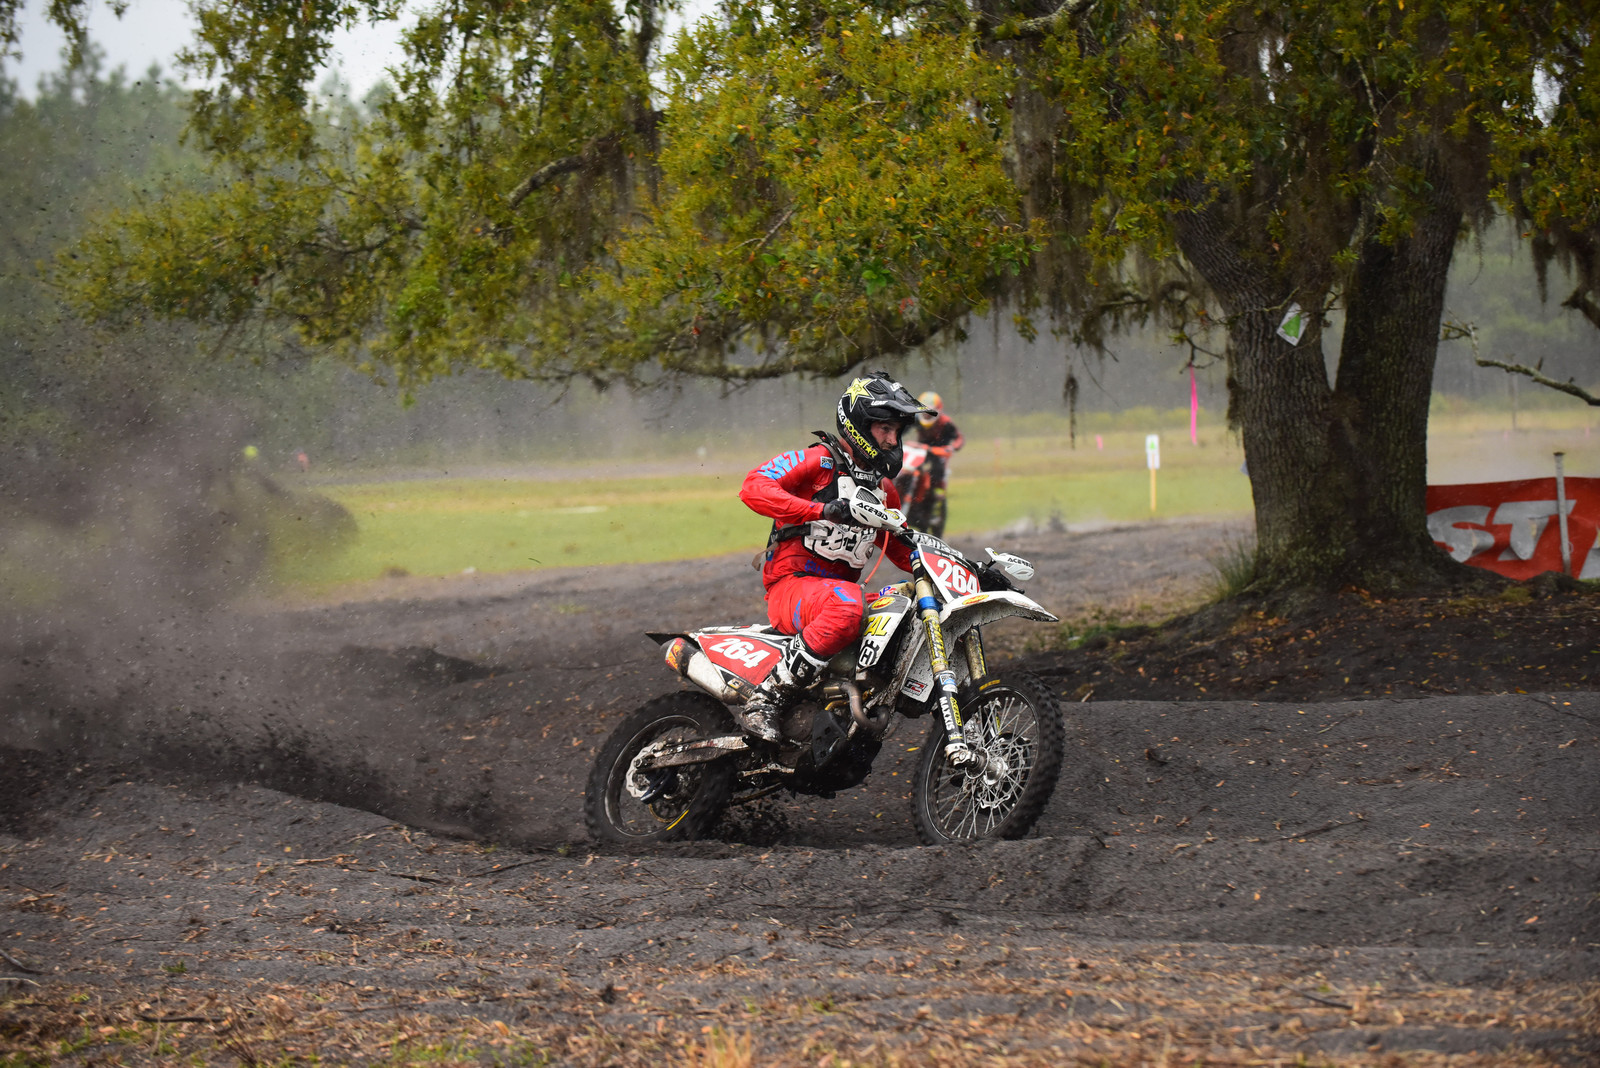 Ryan Sipes - Wild Boar GNCC - Motocross Pictures - Vital MX